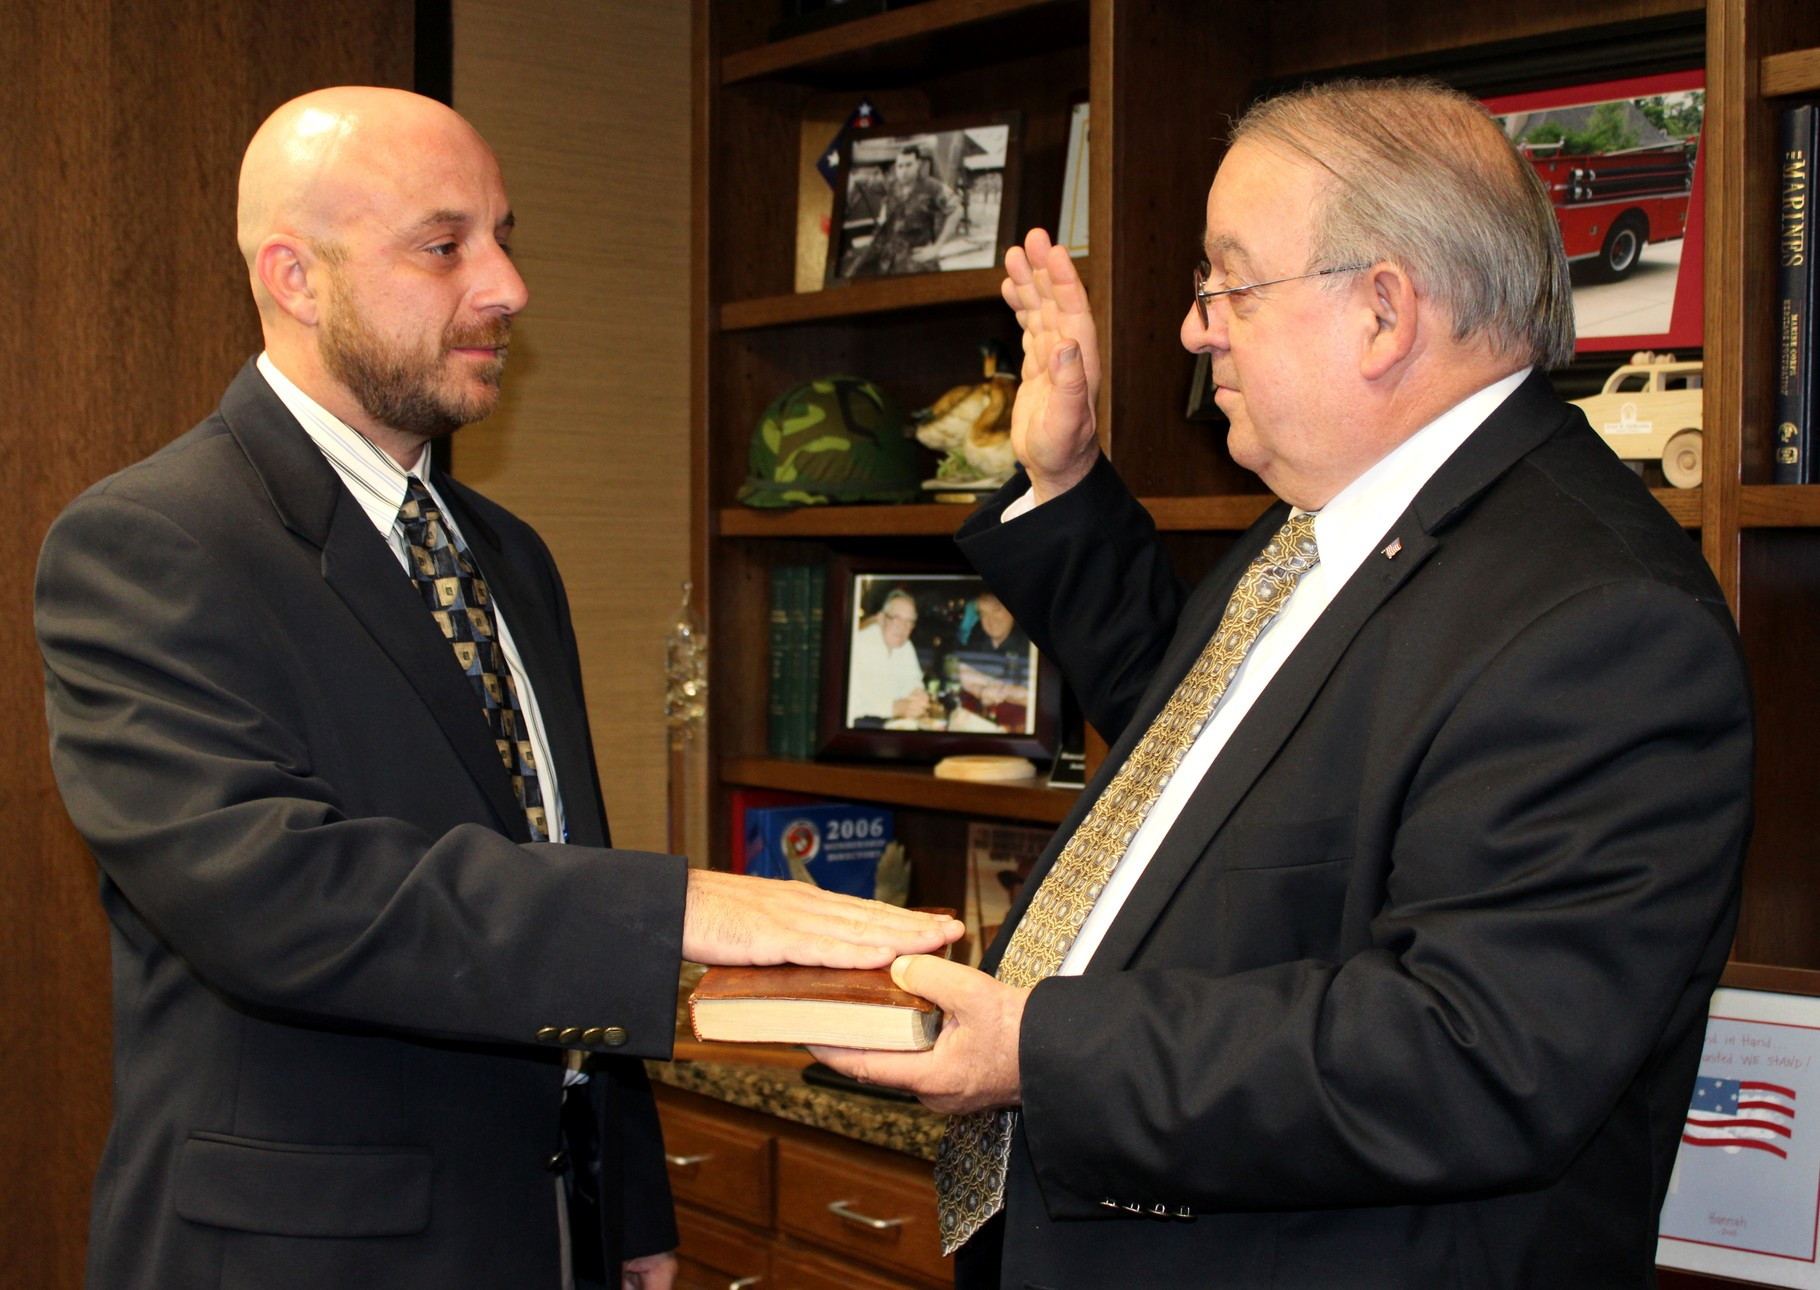 New Assistant District Attorney Joins Calcasieu Parish Staff  Calcasieu Parish District